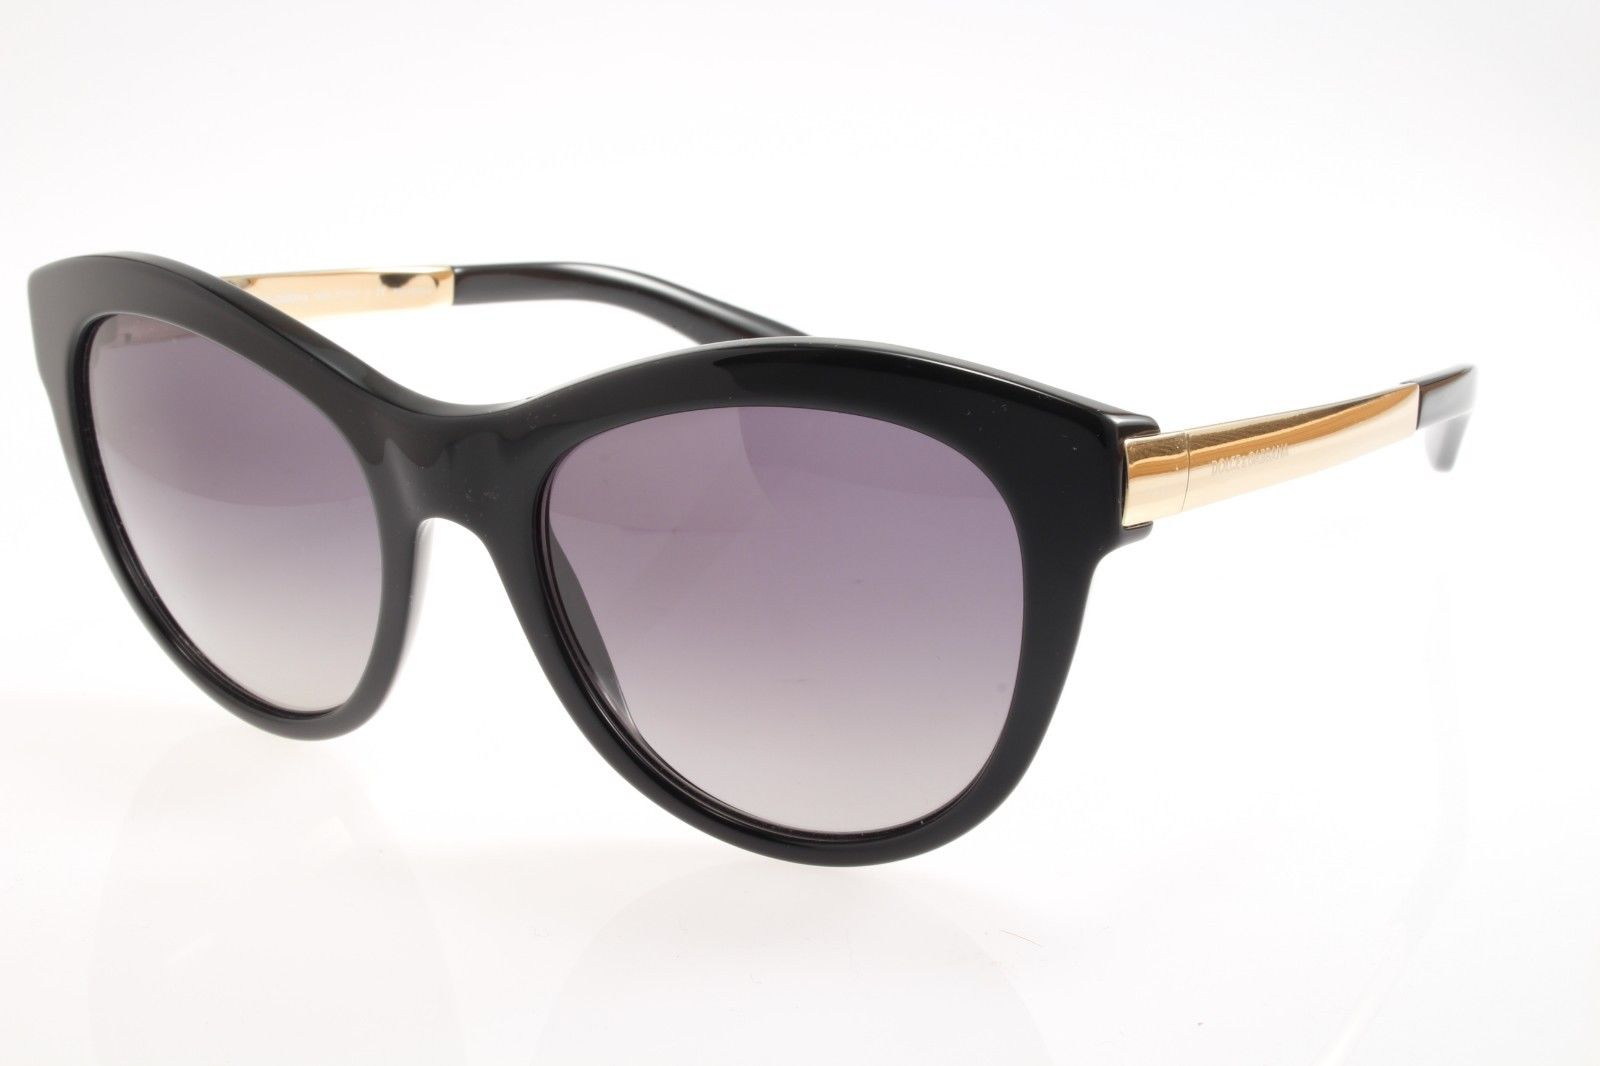 f797df84a13 New original Dolce Gabbana Women Sunglasses DG 4243 501 T3 53 Black  Polarized